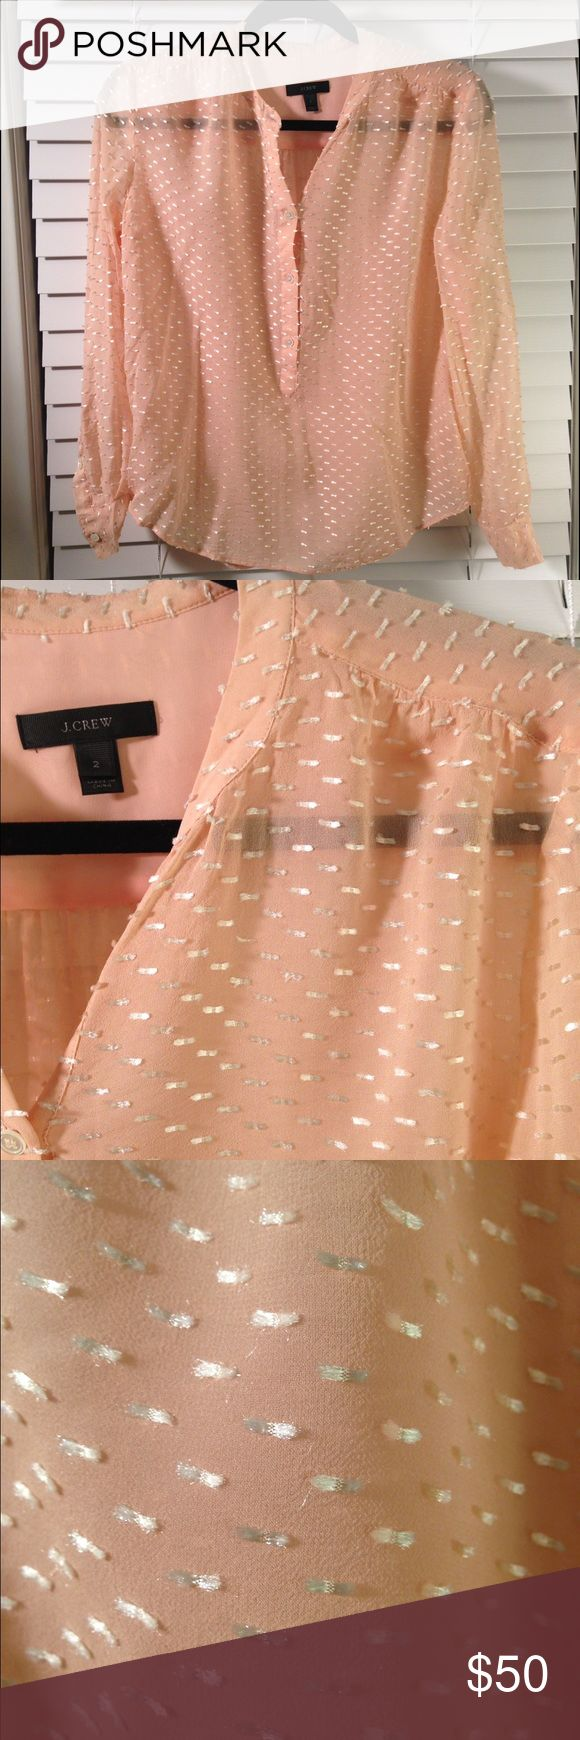 Light pink J Crew blouse Beautiful J Crew silk dash-dot blouse. Featuring a chic new take on swiss-dot, this airy blouse looks polka-dotted from far away and gives a slight shimmer from detailing. Great paired with trousers for a polished work look. J. Crew Tops Blouses